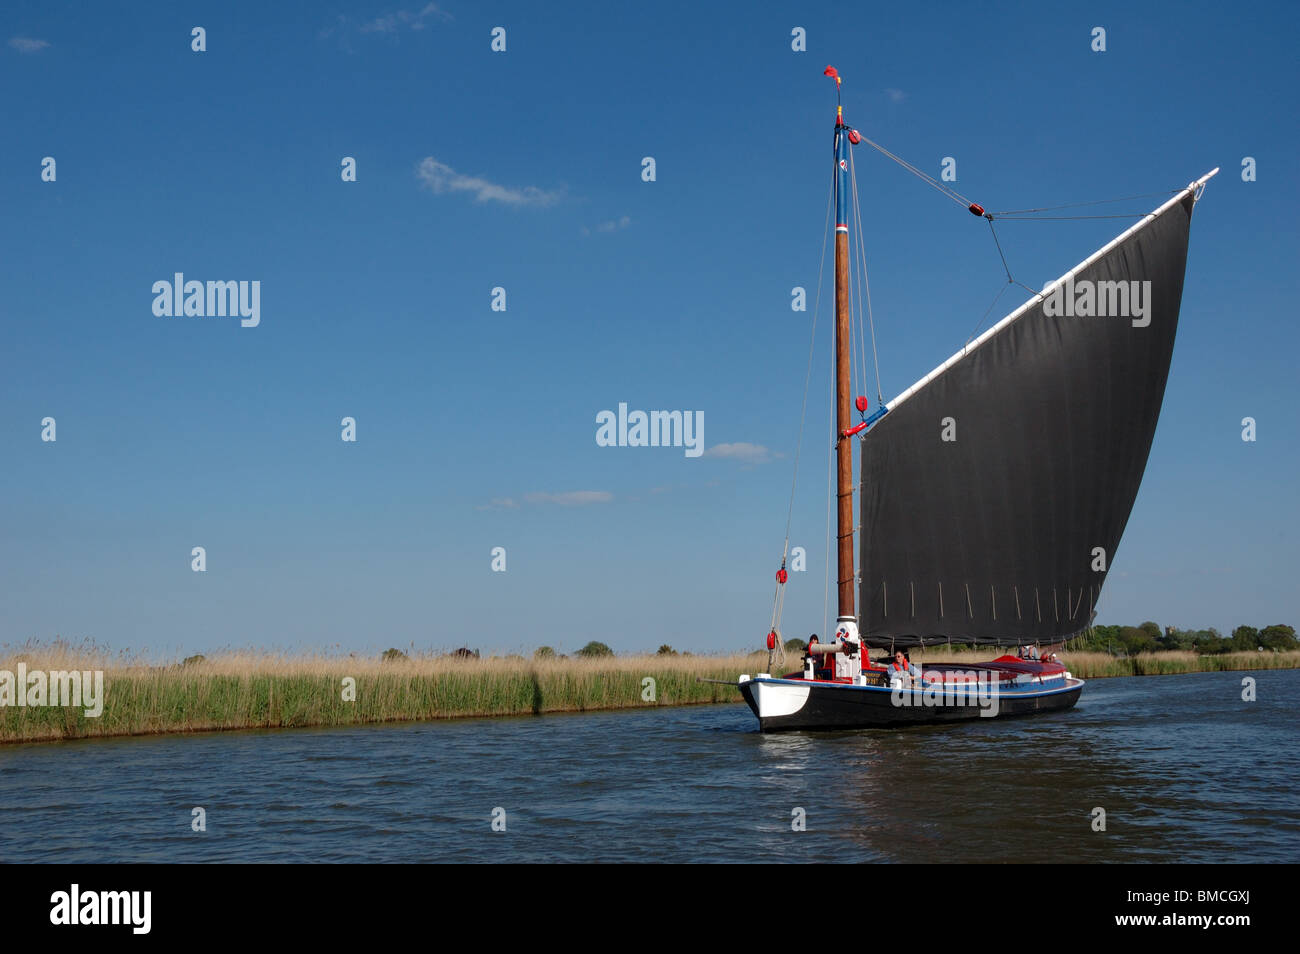 Historic Norfolk trading wherry Albion on the River Bure, Broads National Park Stock Photo